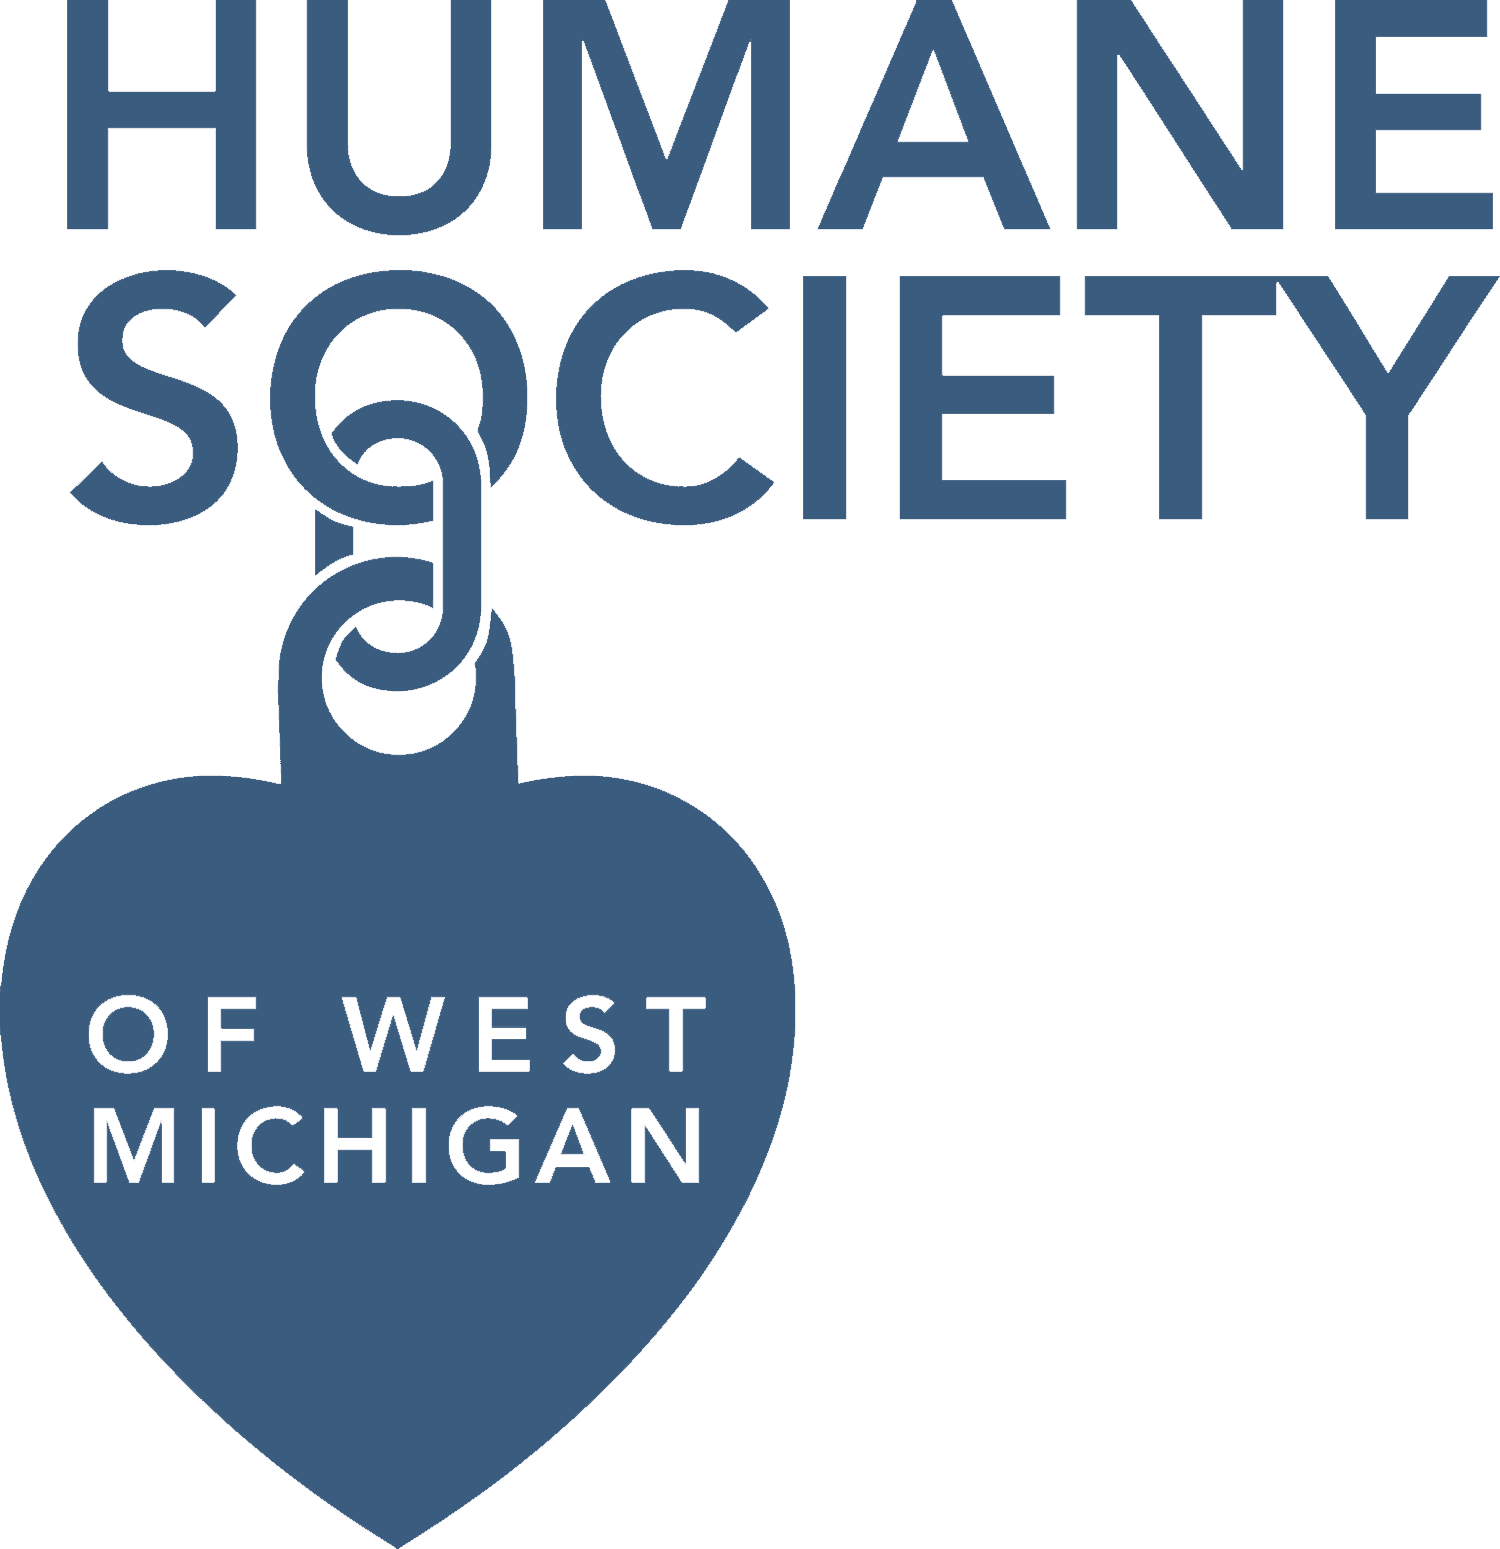 The Humane Society of West Michigan